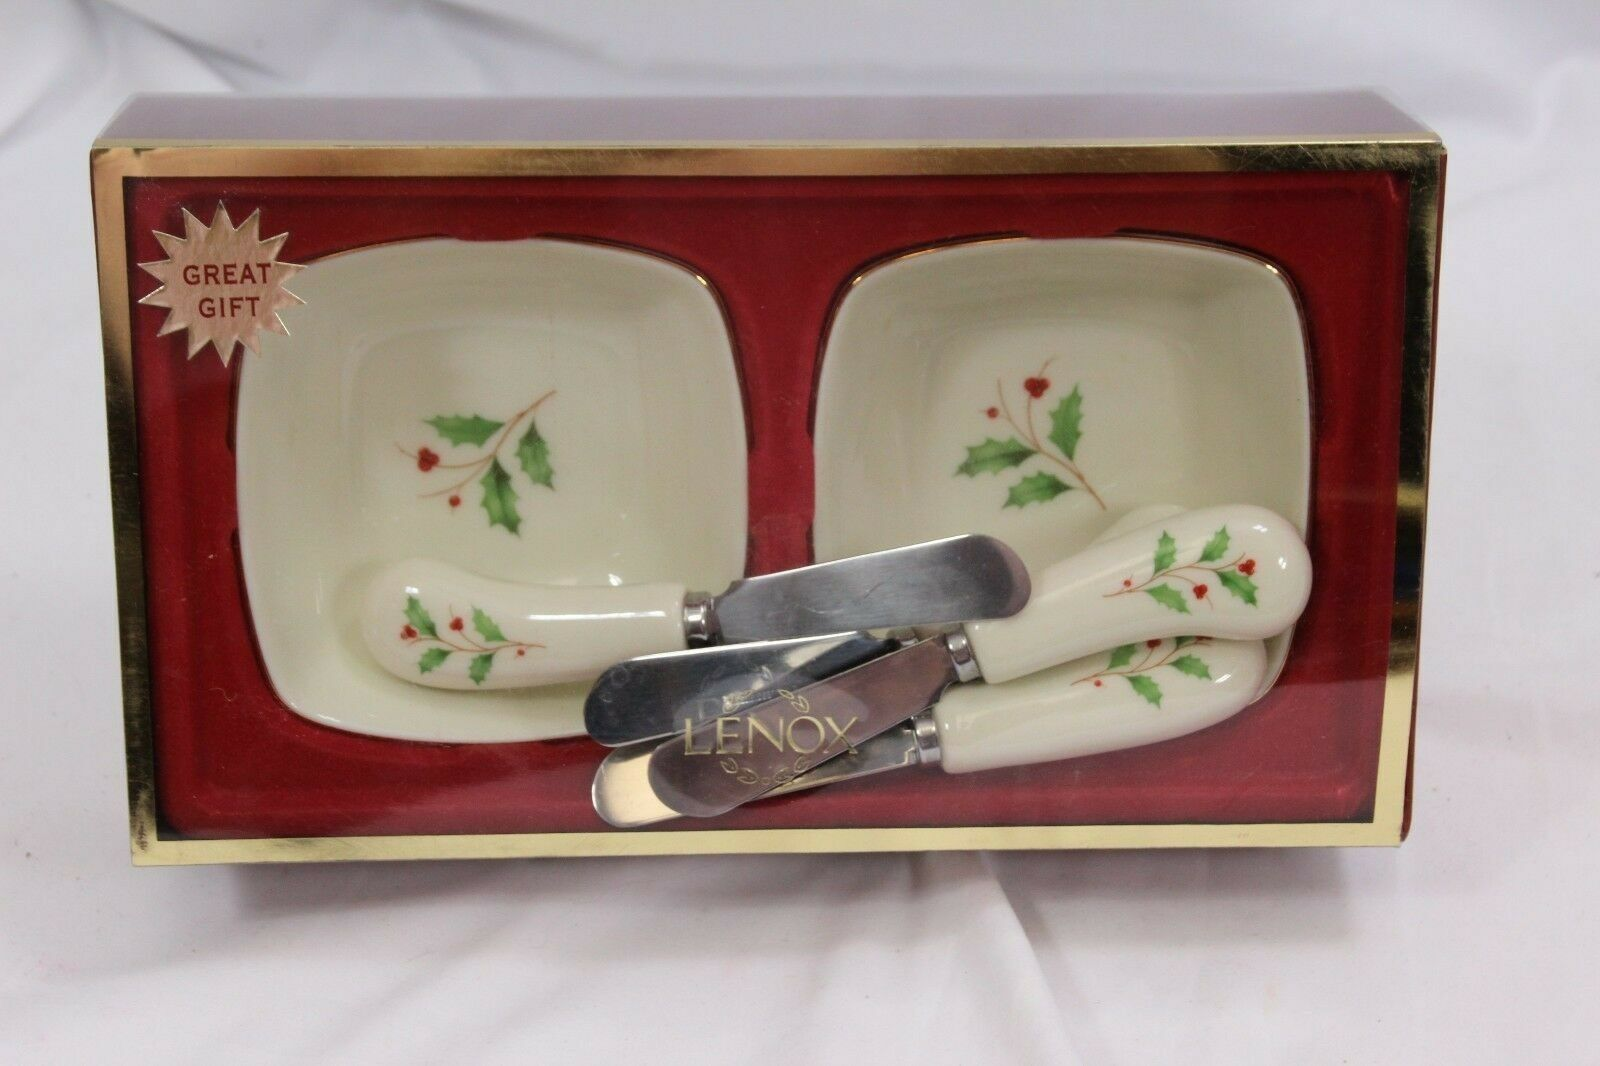 Lenox Holiday Dipping Bowls with 4 Spreaders image 2